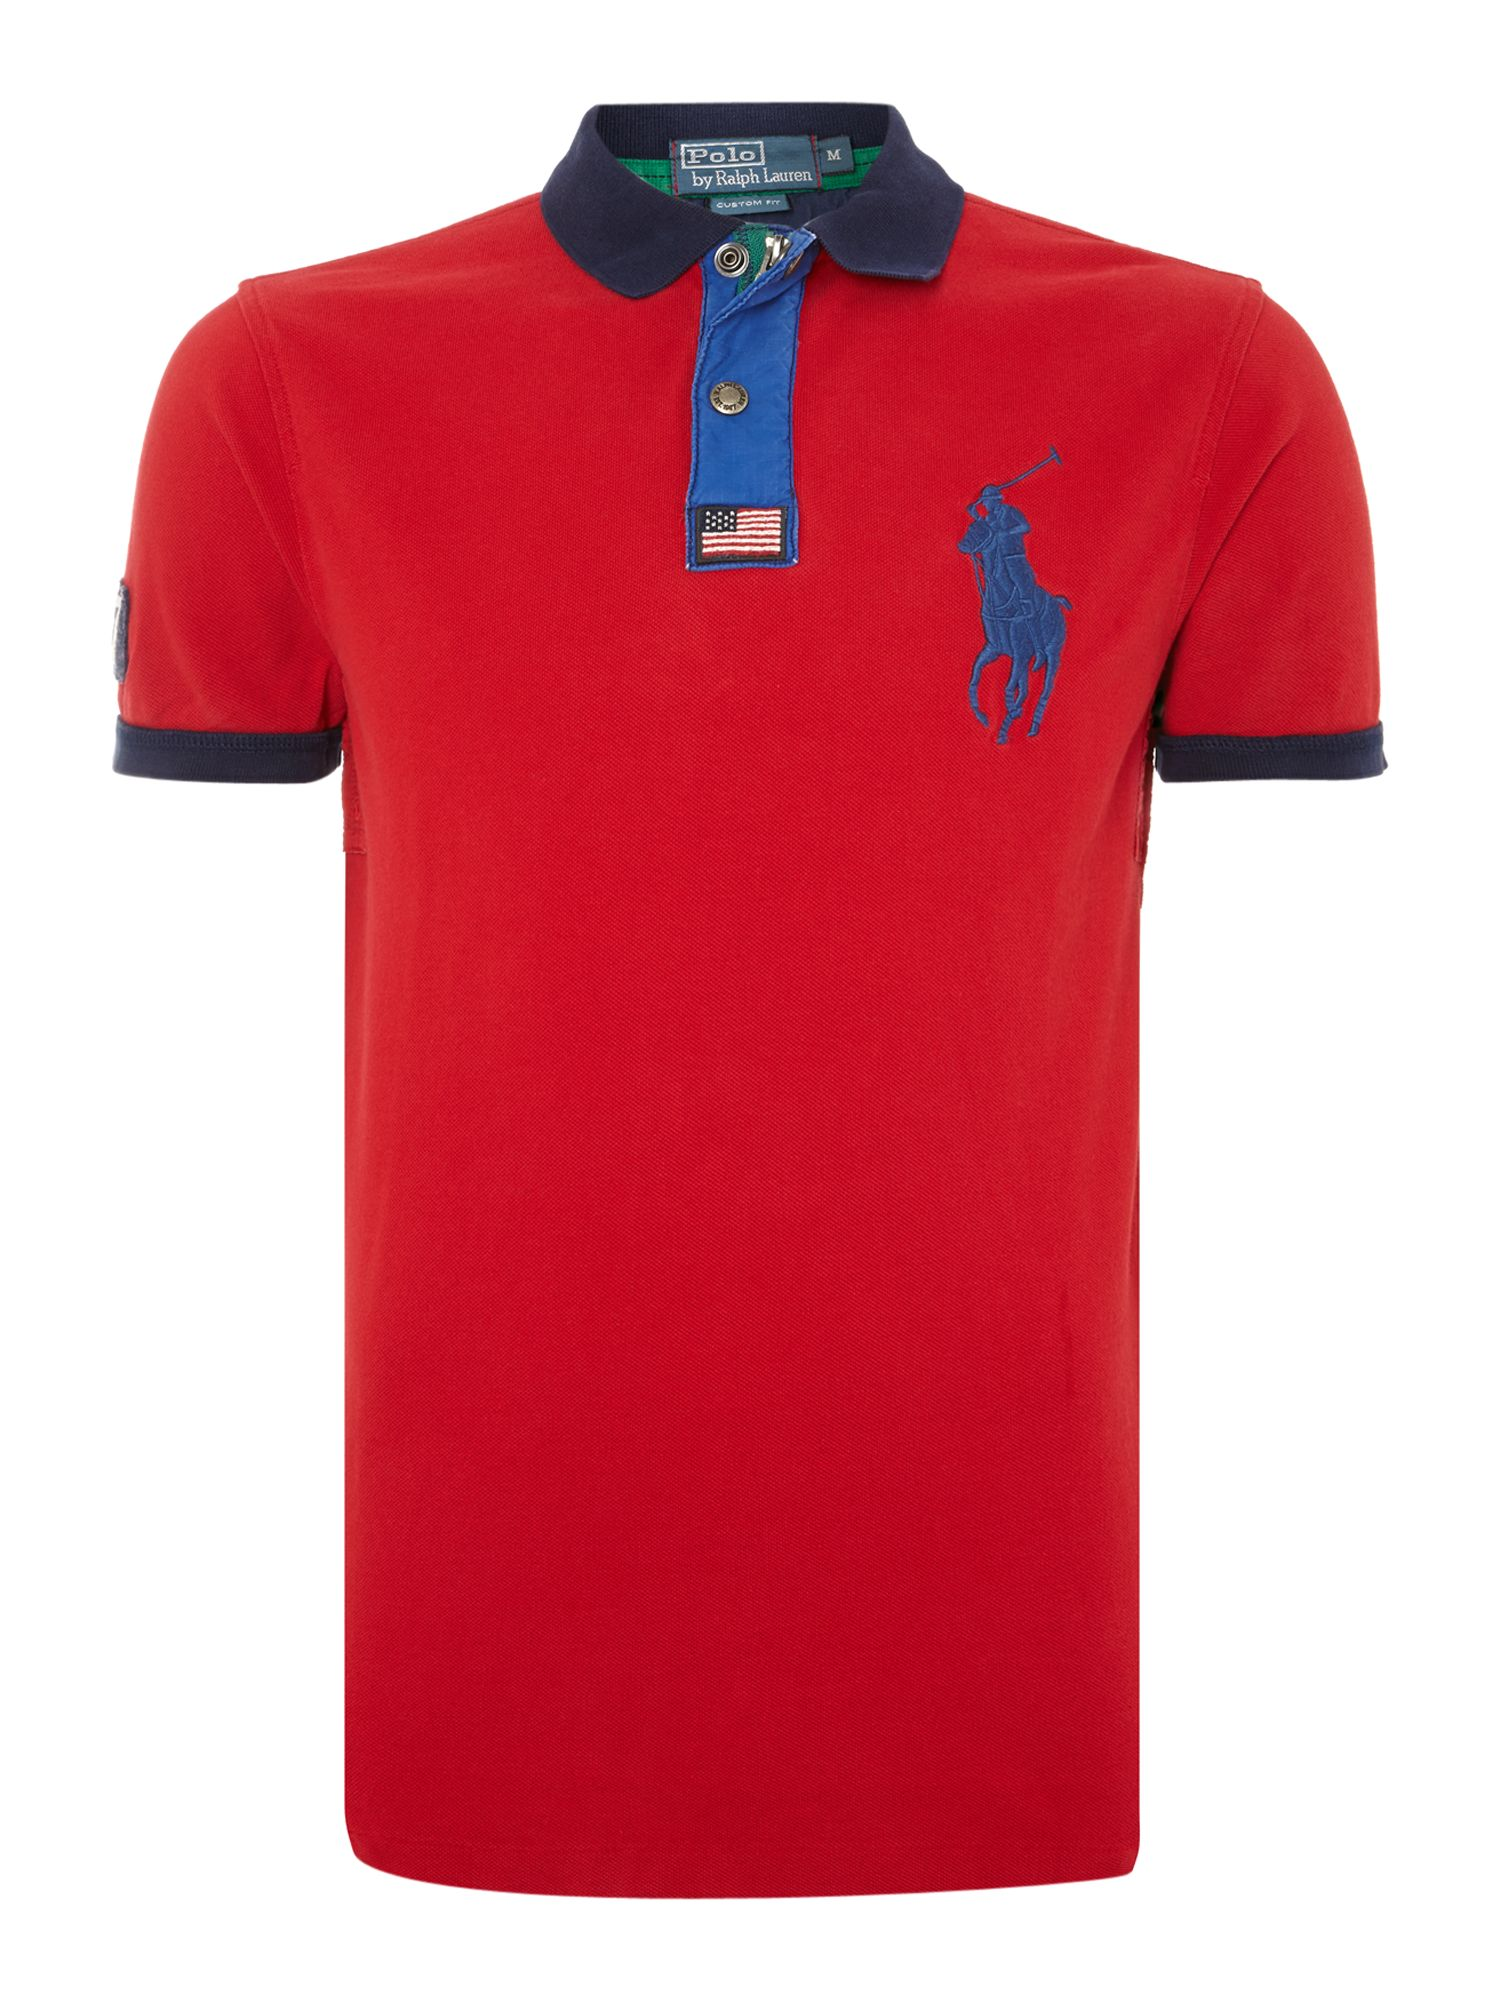 Big pony chunky zip popper slim fit polo shirt